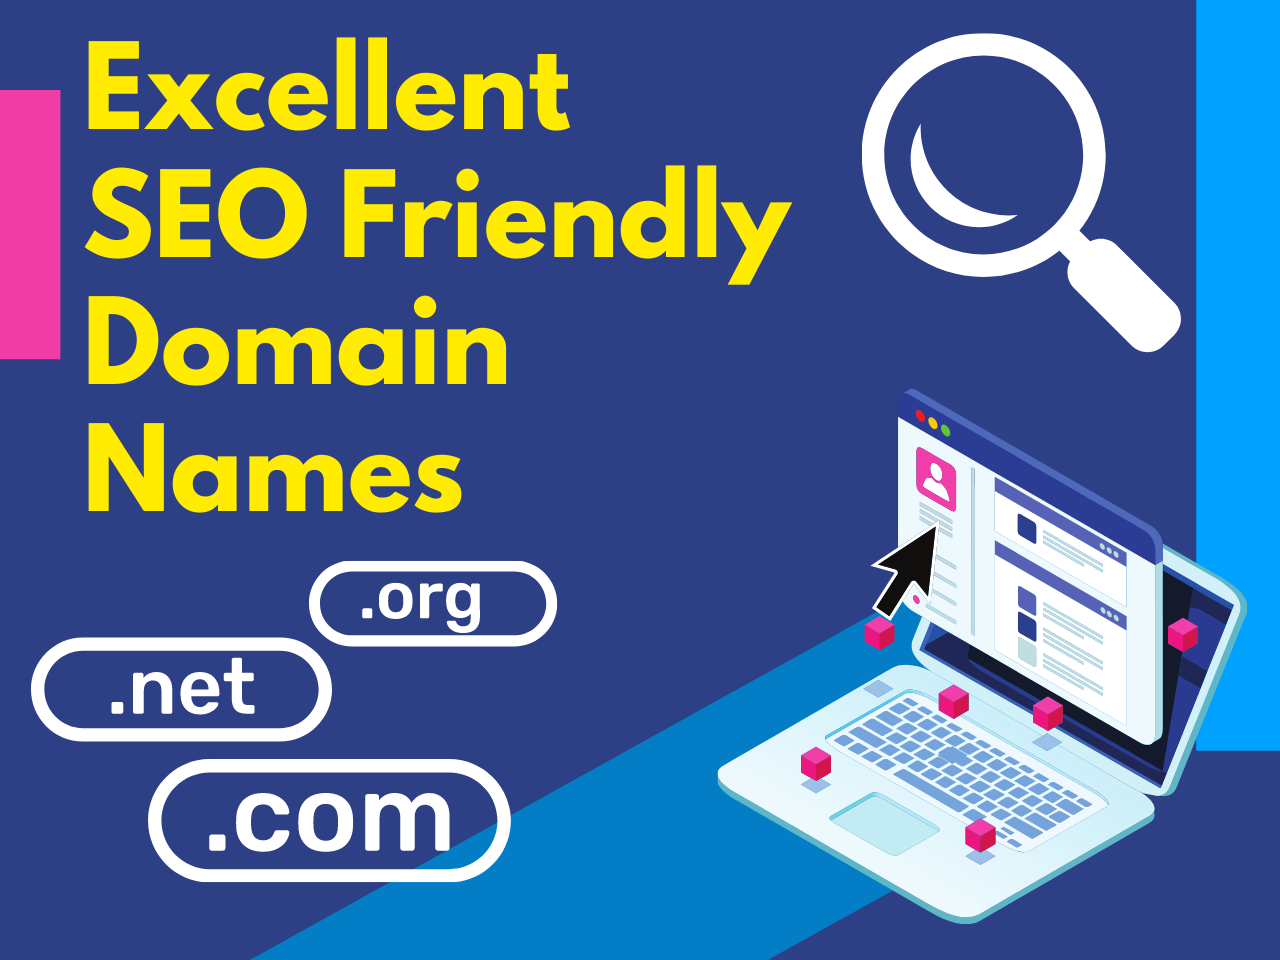 You will get Excellent SEO Friendly Domain Names